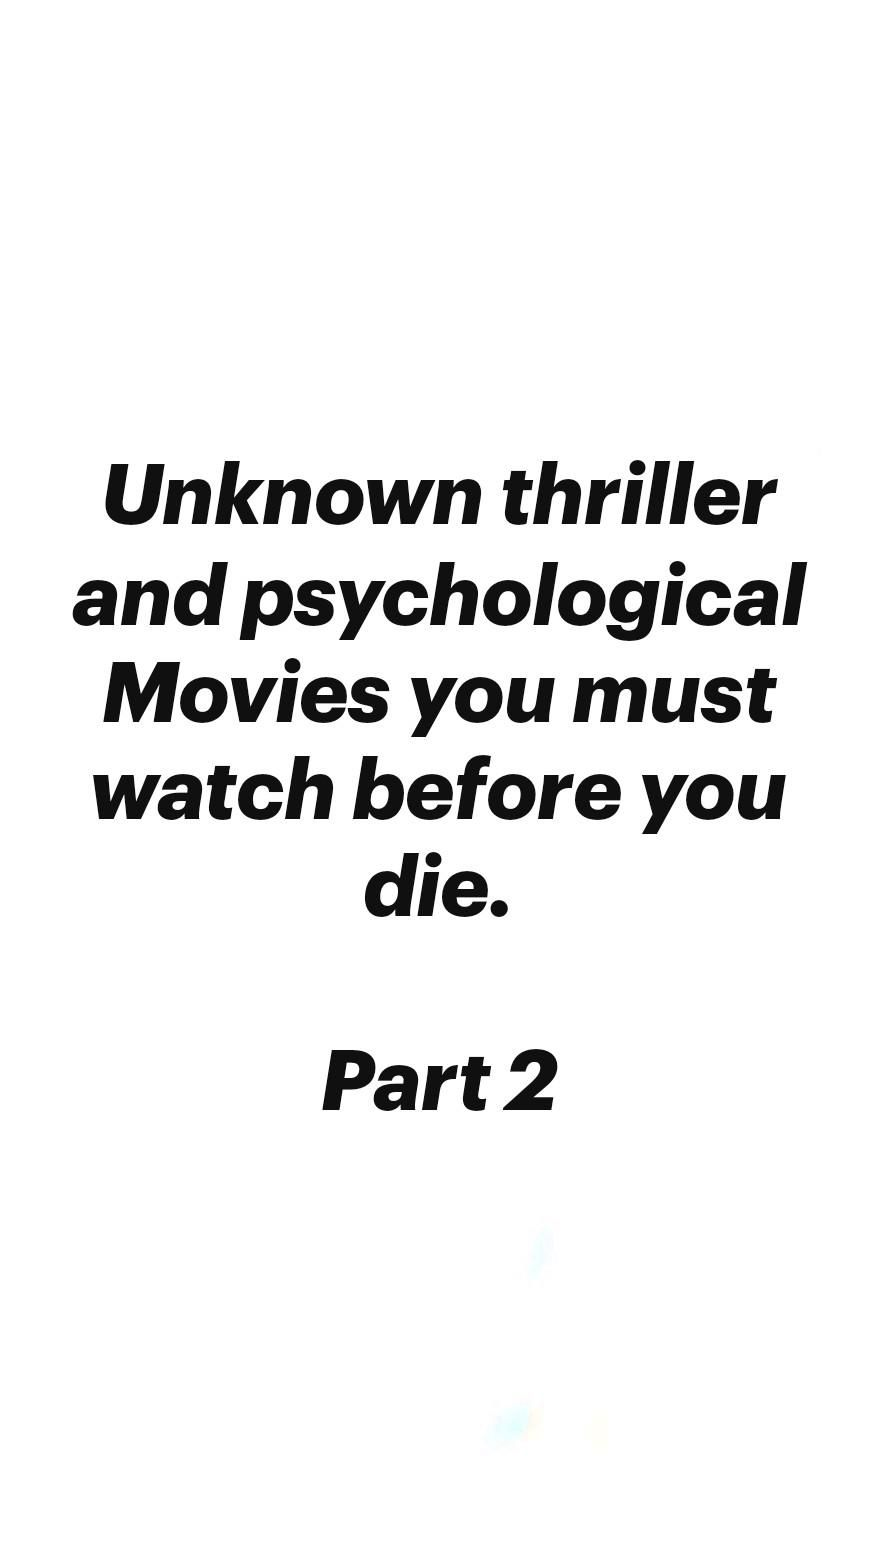 Unknown thriller and psychological Movies you must watch before you die.  Part 2